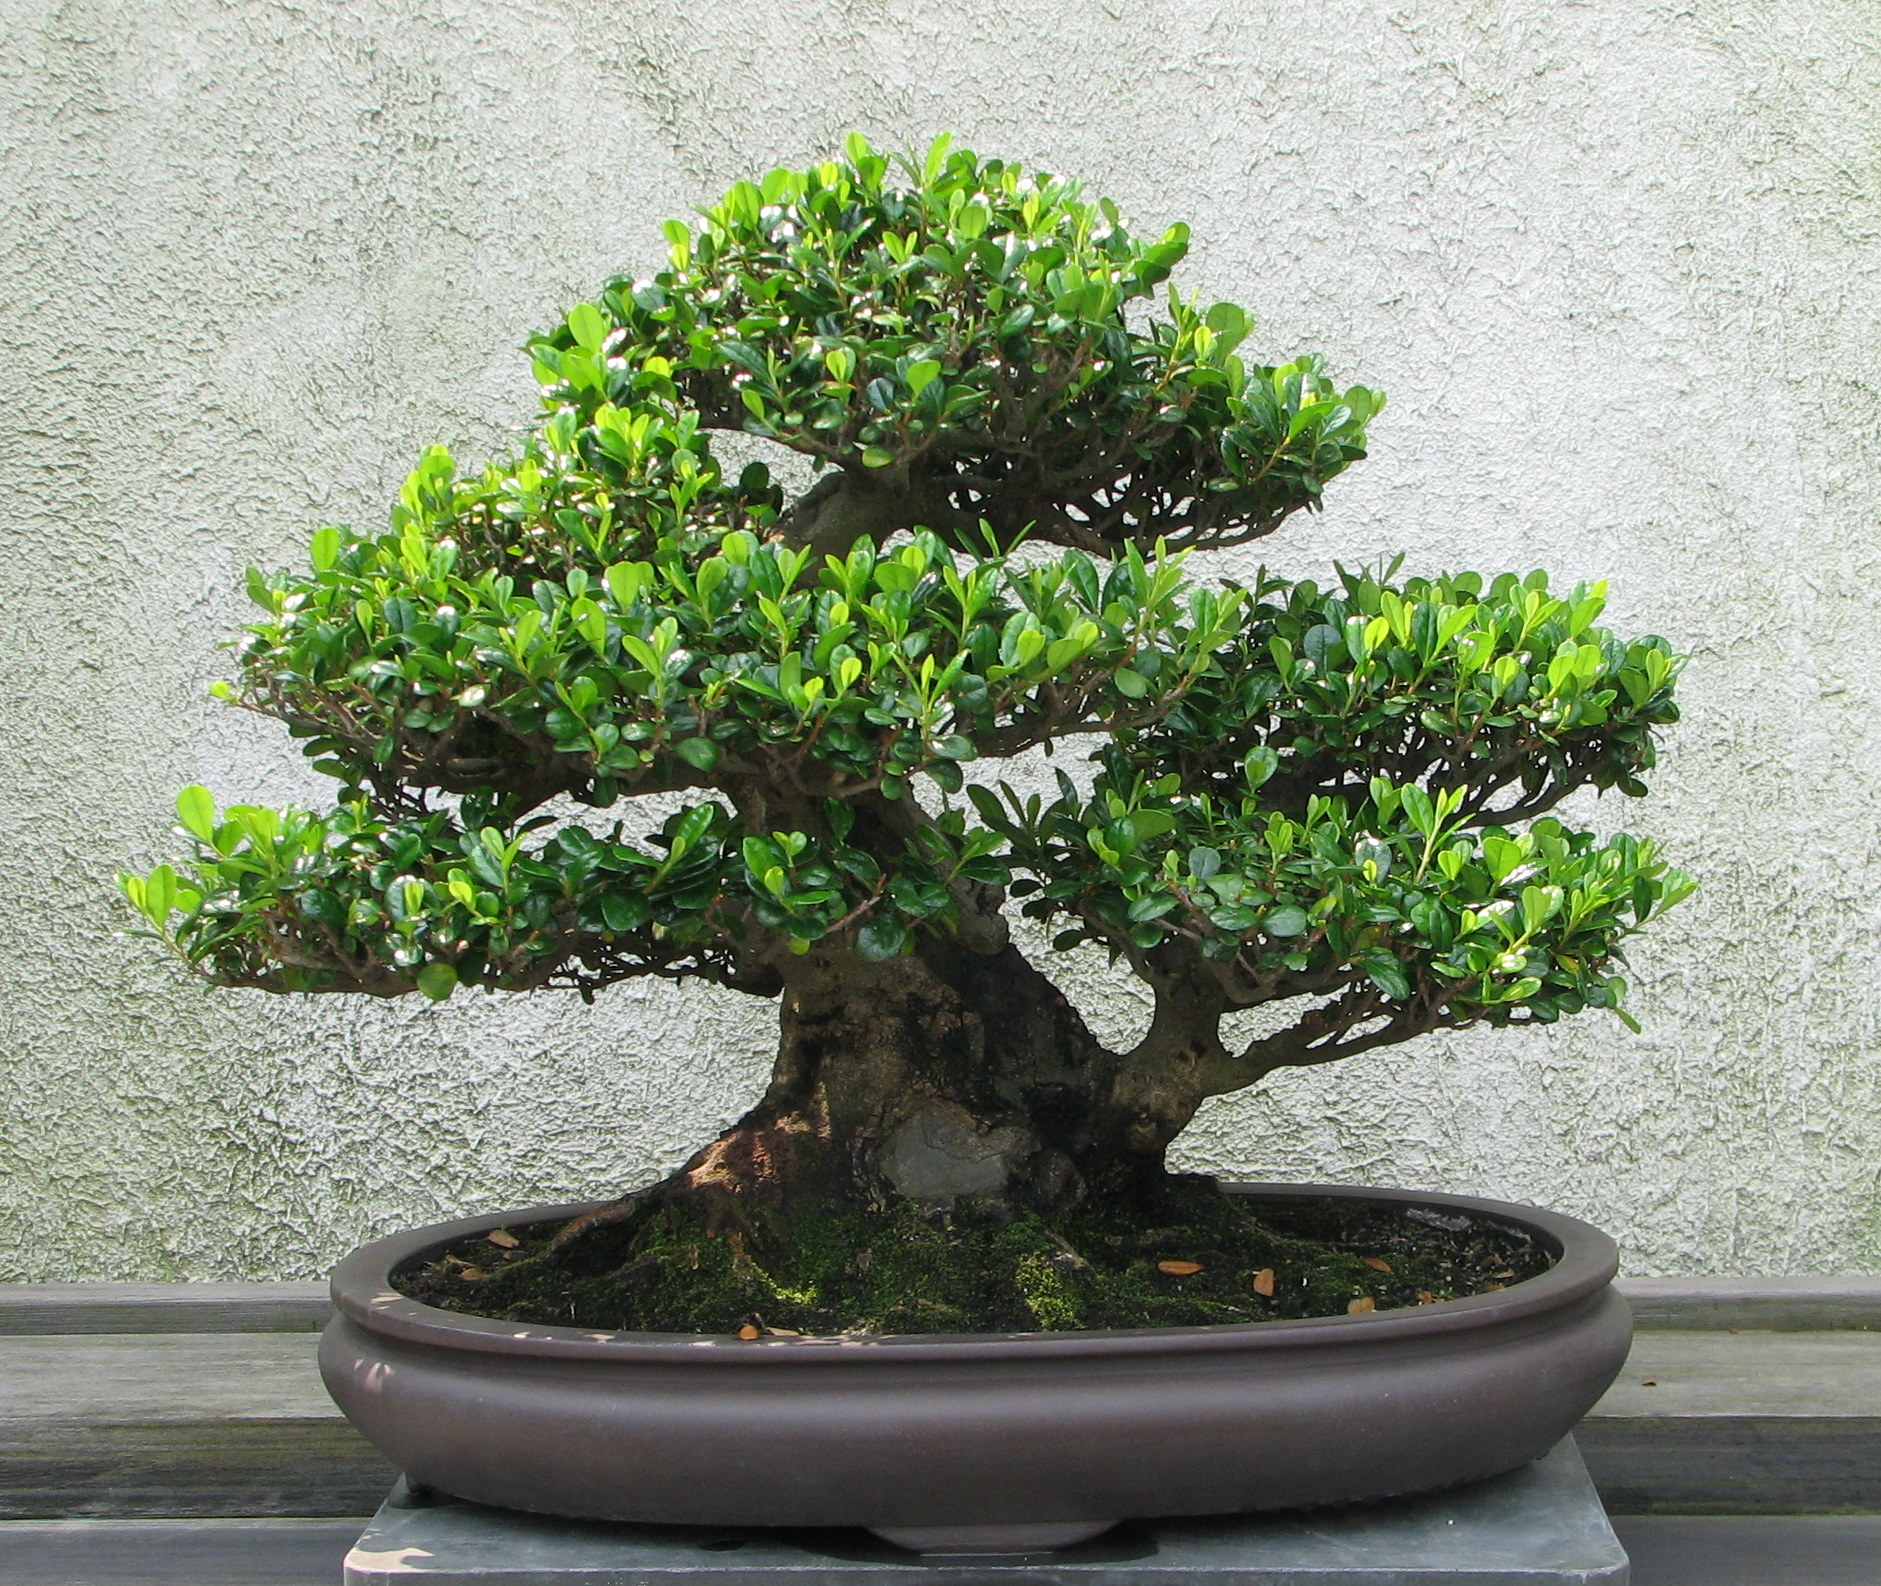 File eurya 1970 wikipedia - Plantas para bonsai ...